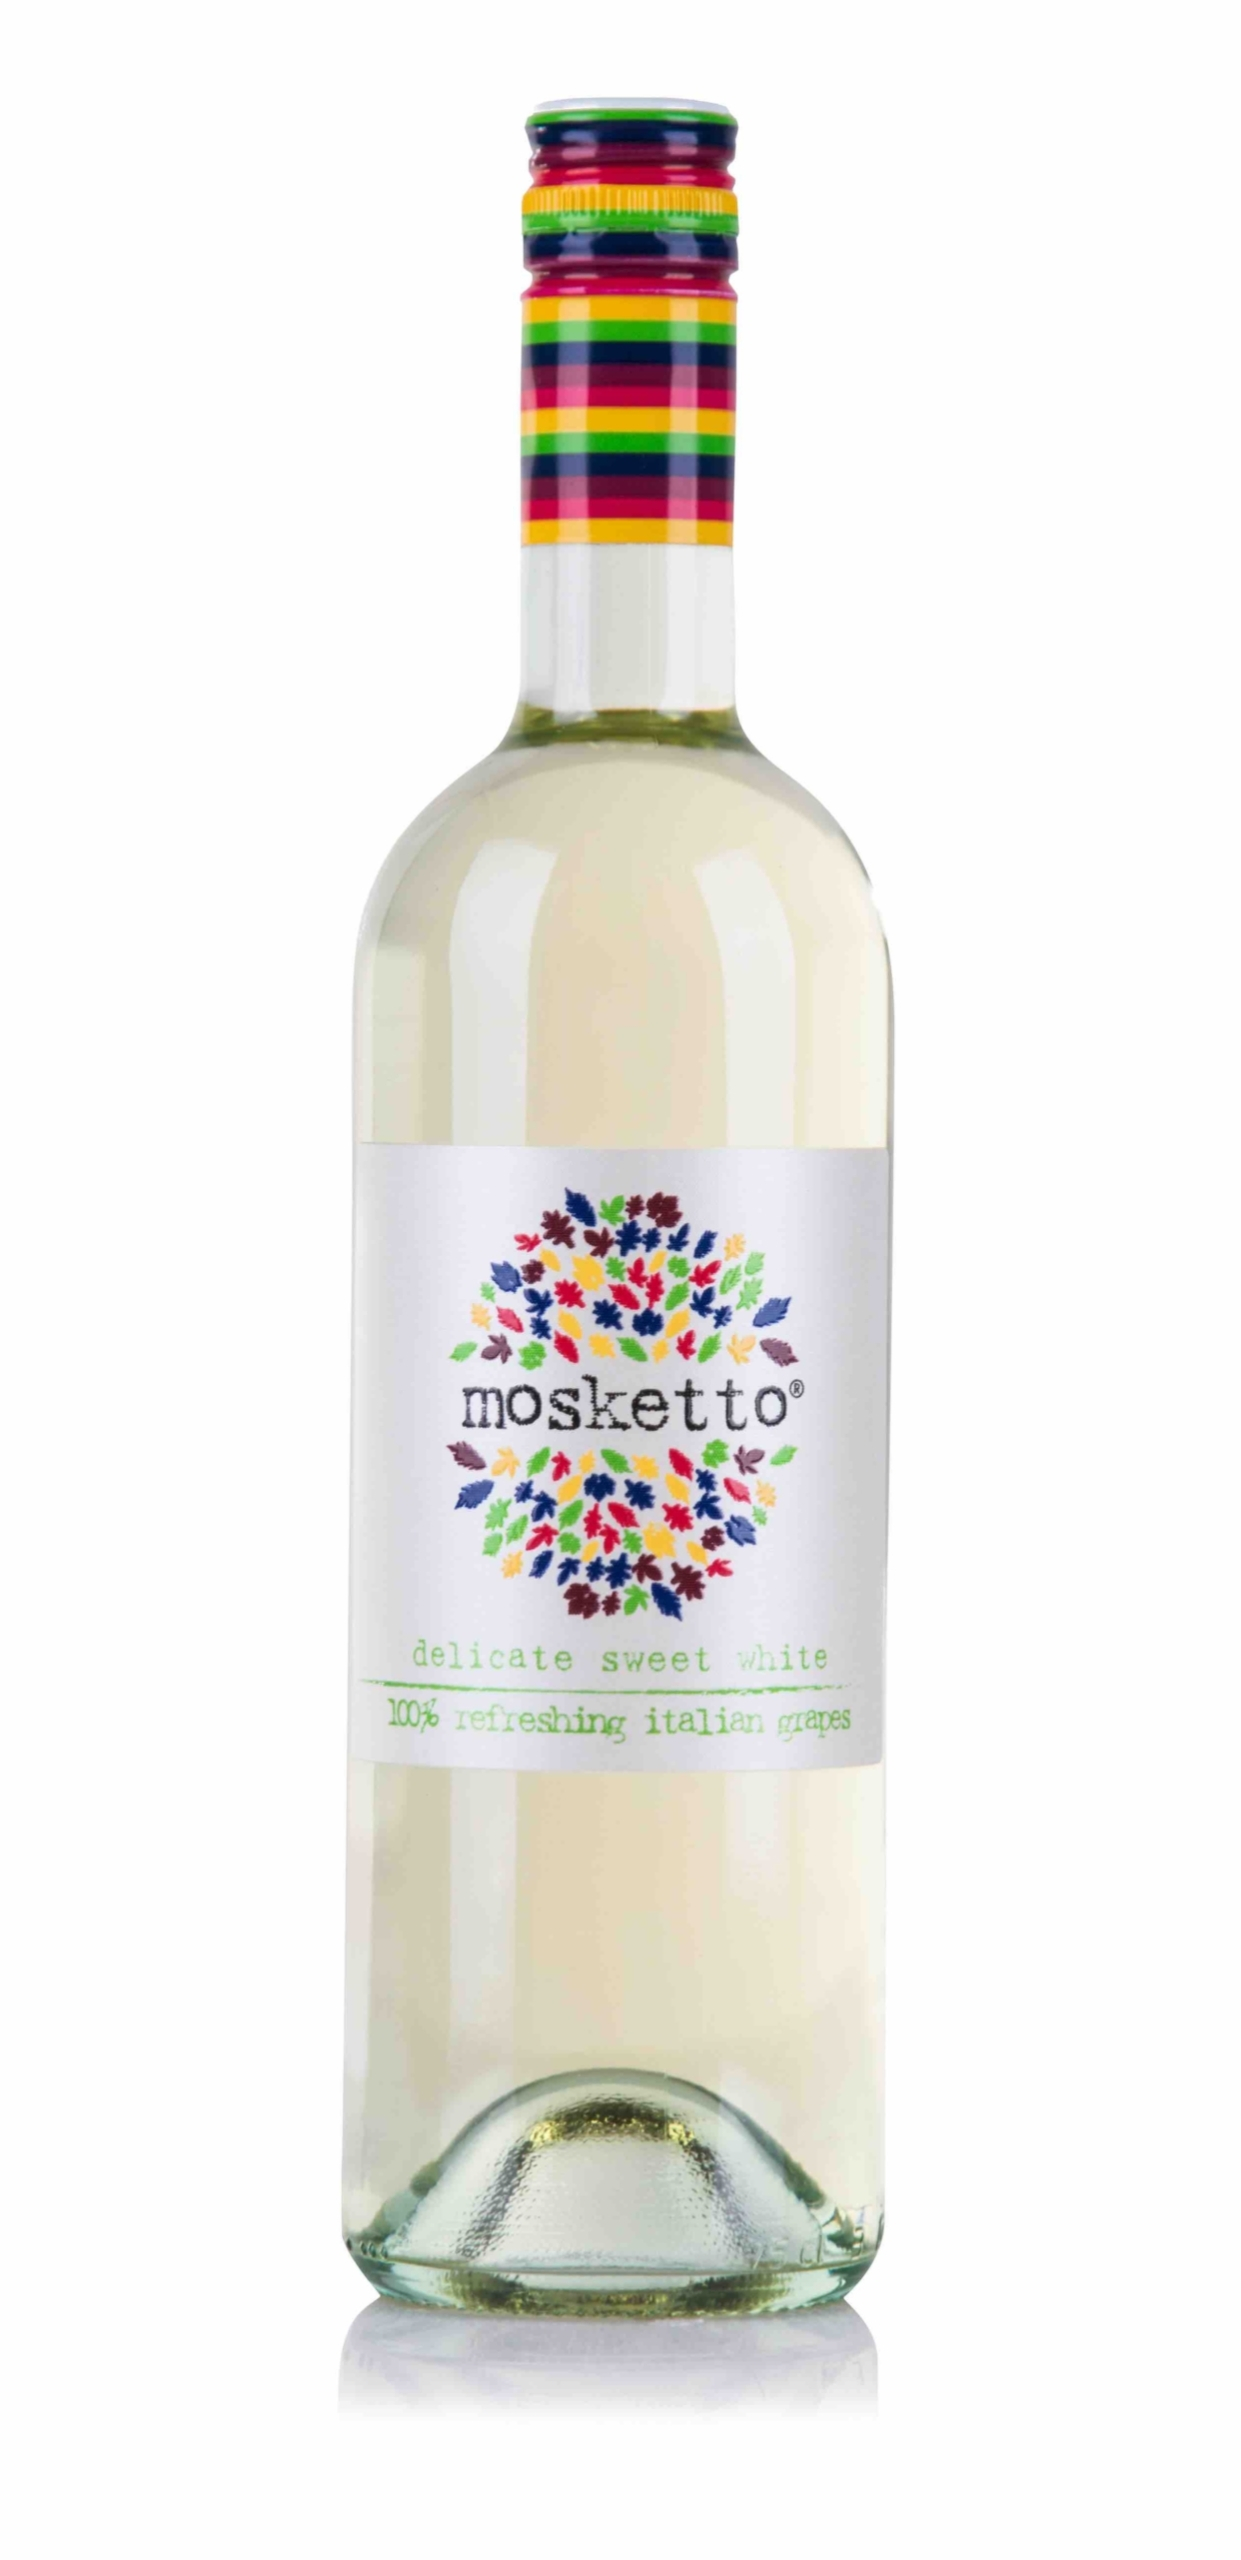 Mosketto Delicate Sweet Low Alcohol Wine